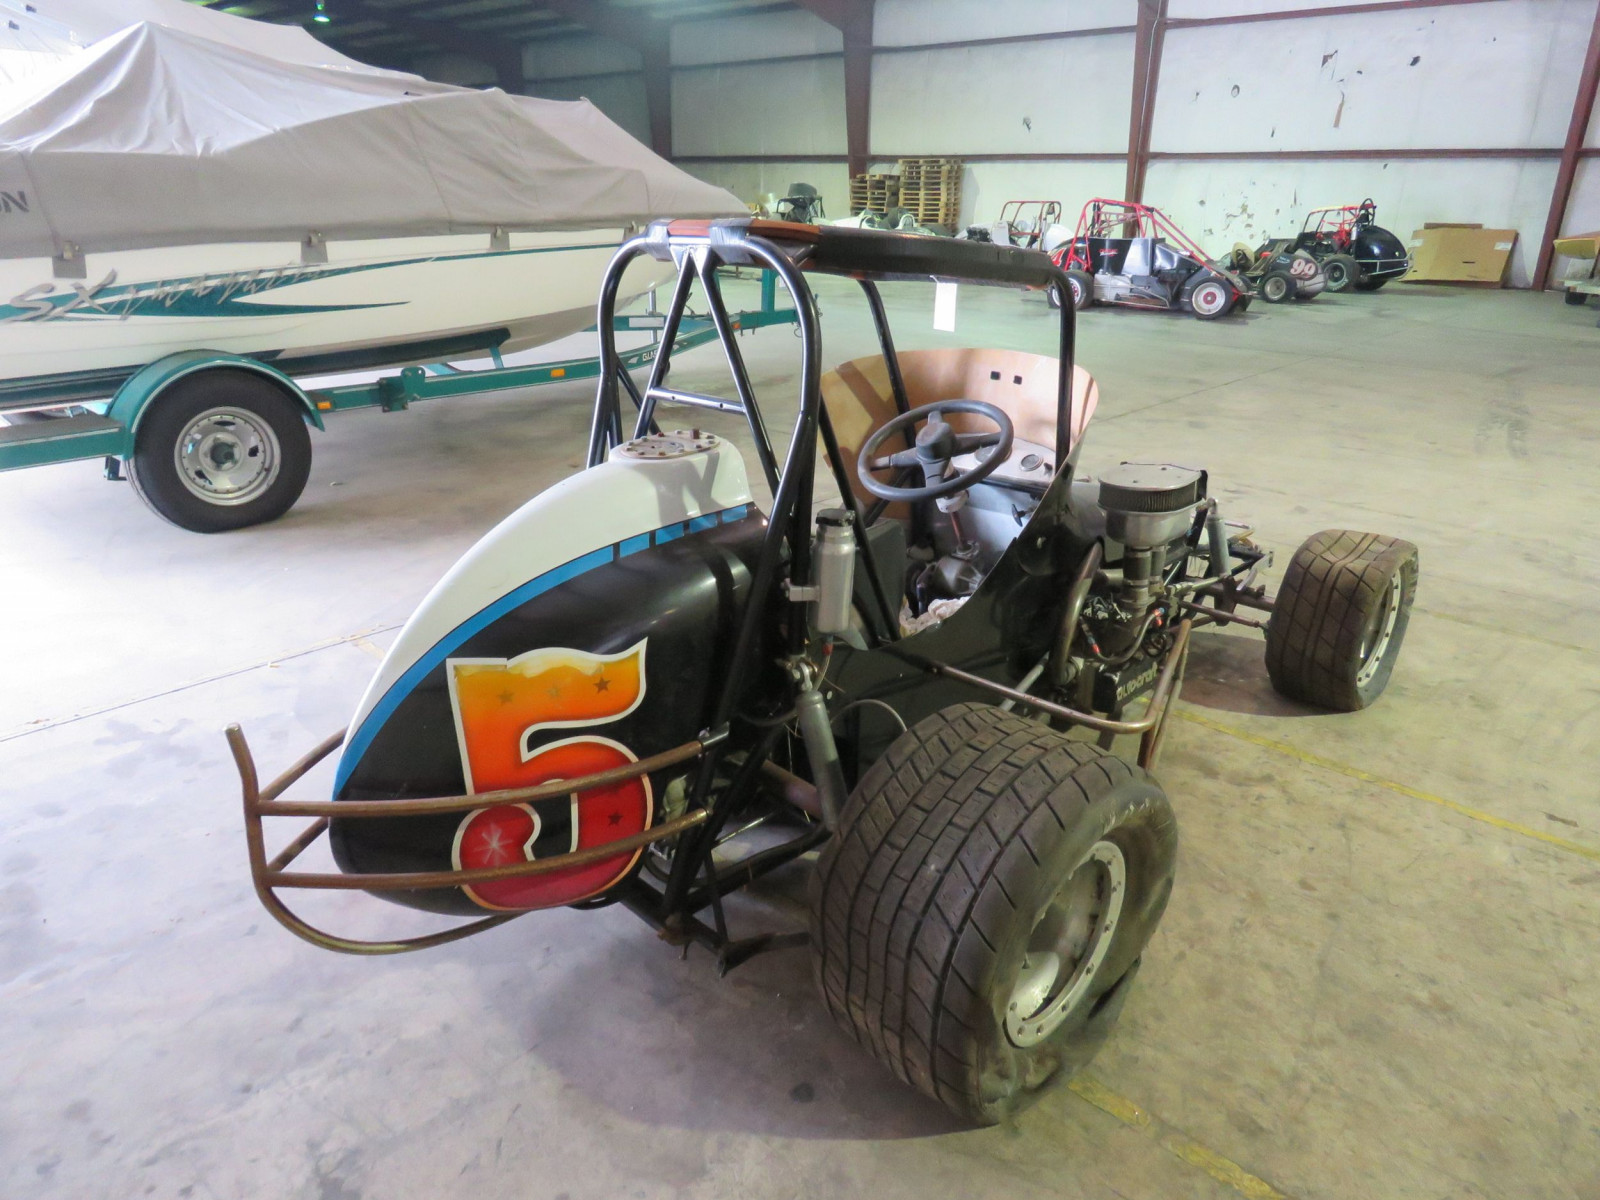 Vintage Edmunds Midget Race Car - Image 4